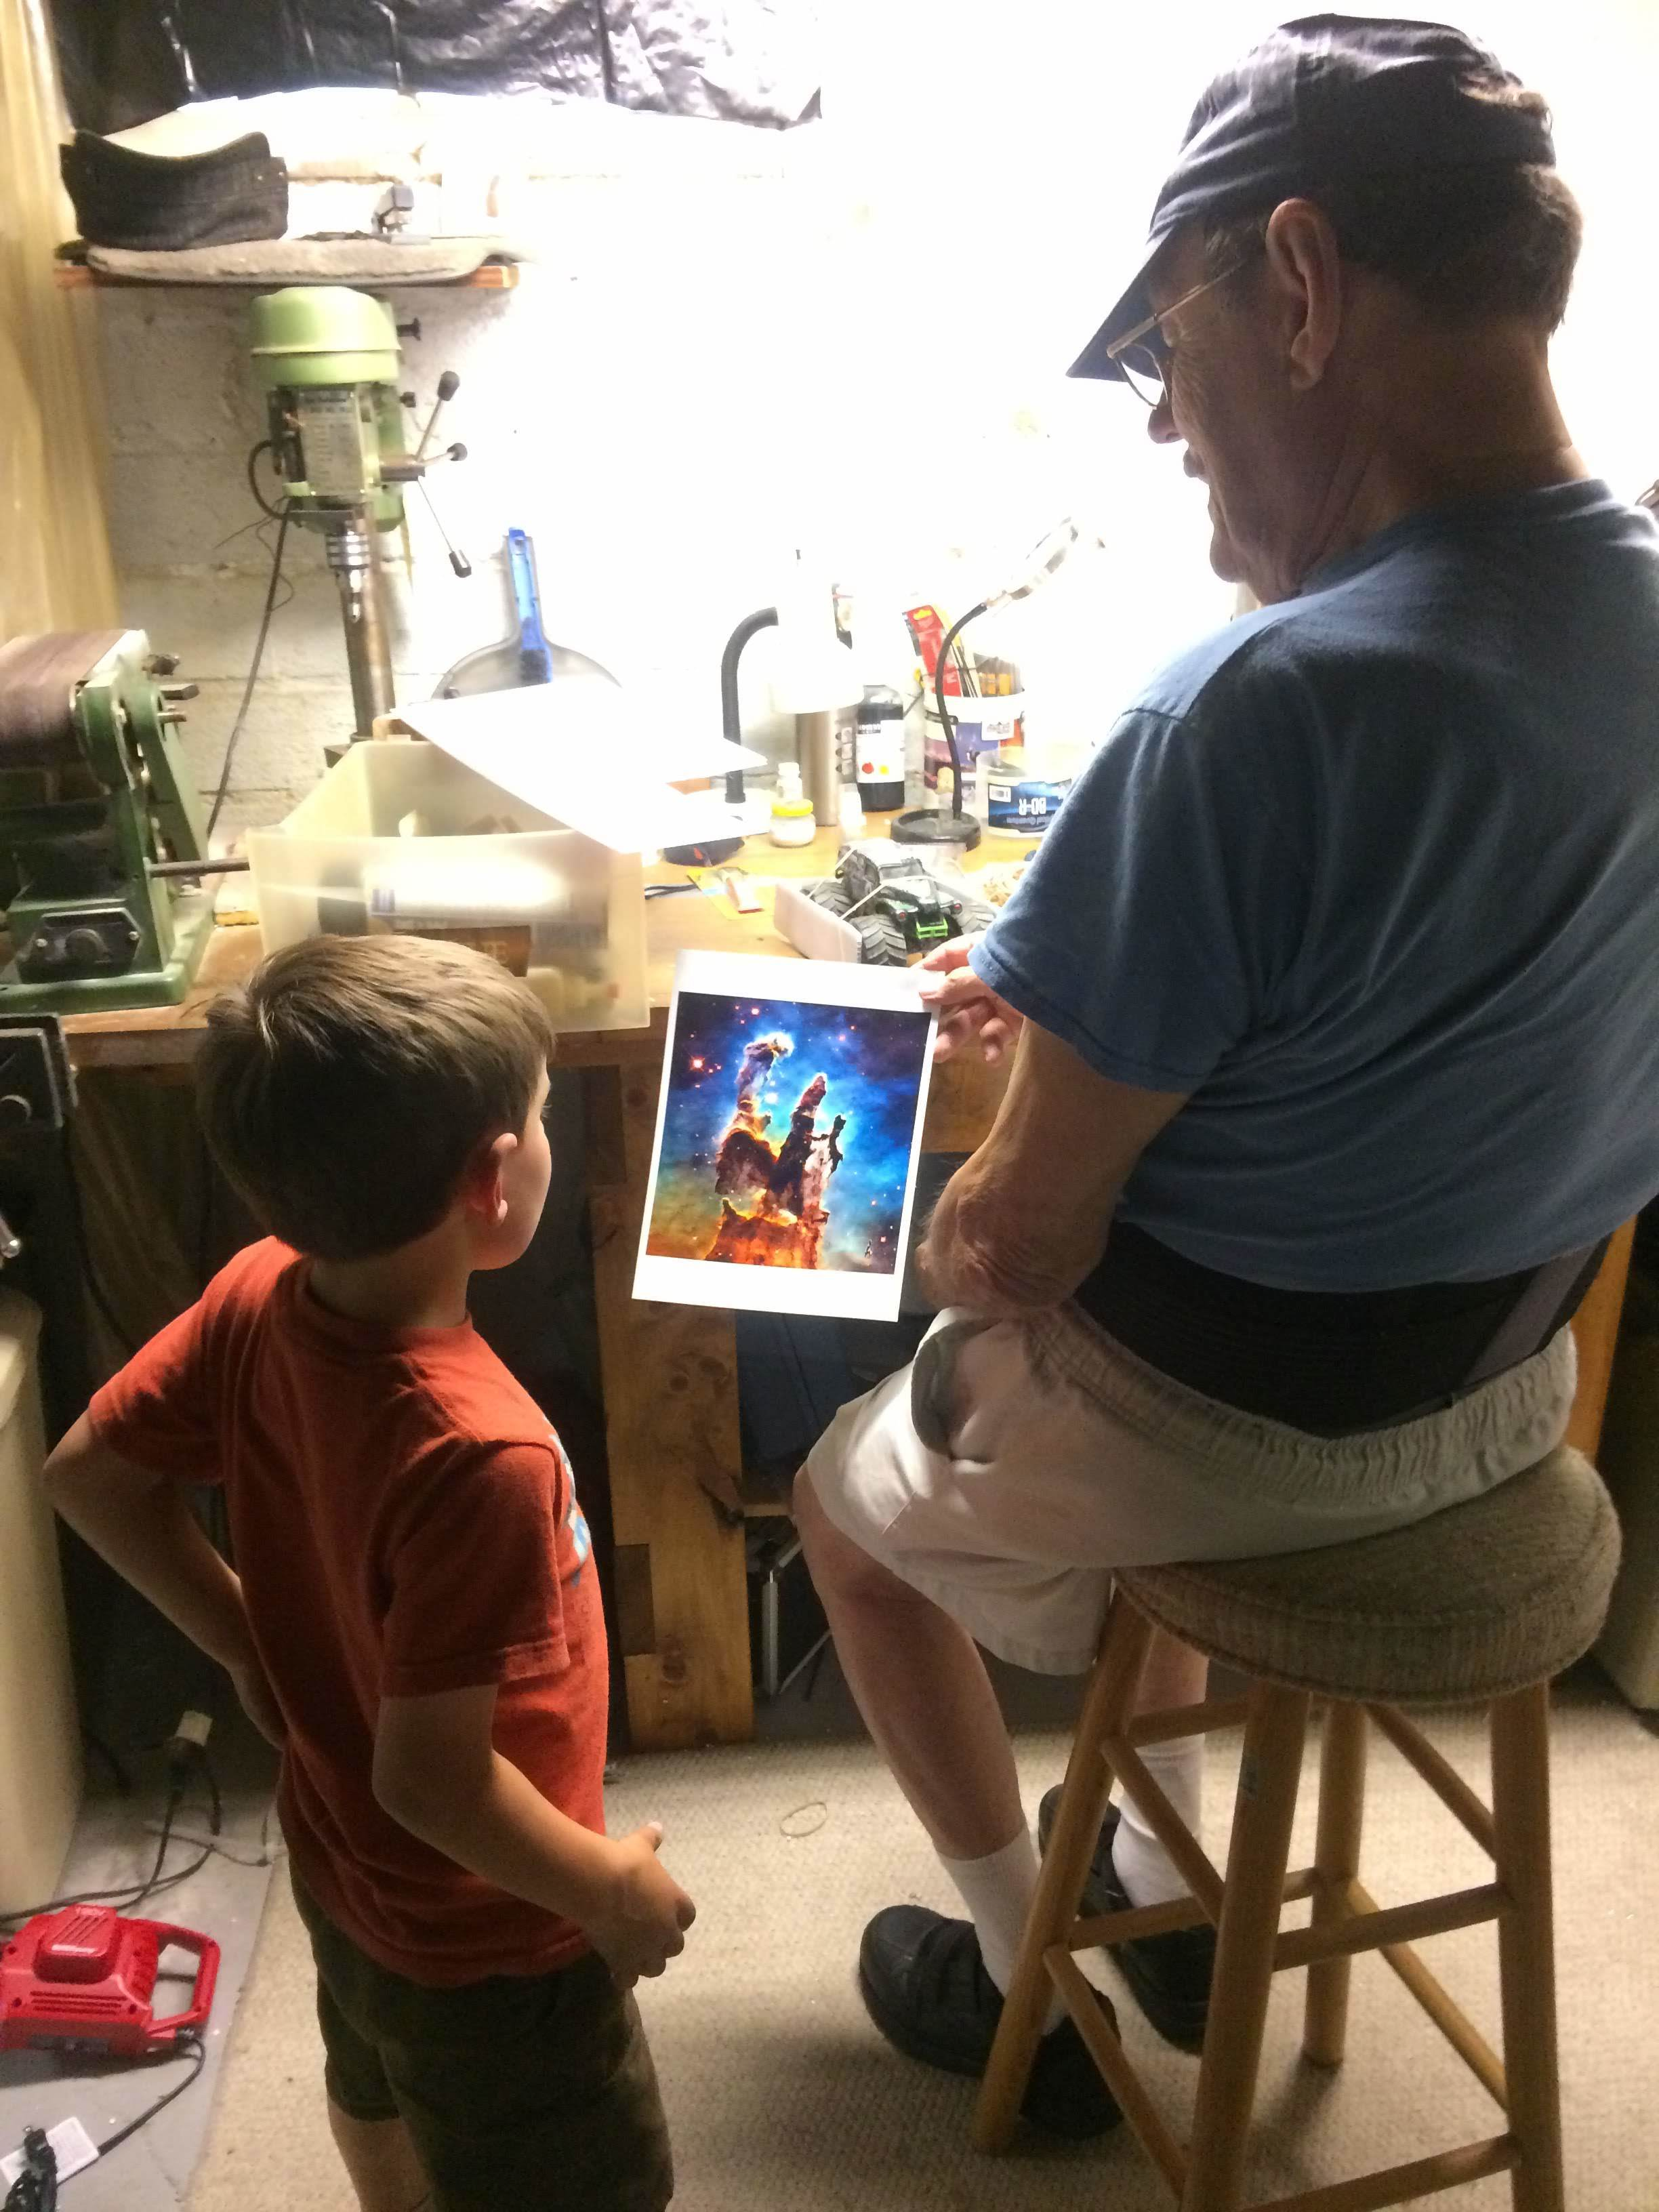 Visit with his dziadziu (Polish for Grandpa) where he give Ollie a photo of something from space. (Ollie now reminded me it is star birth we are looking at)